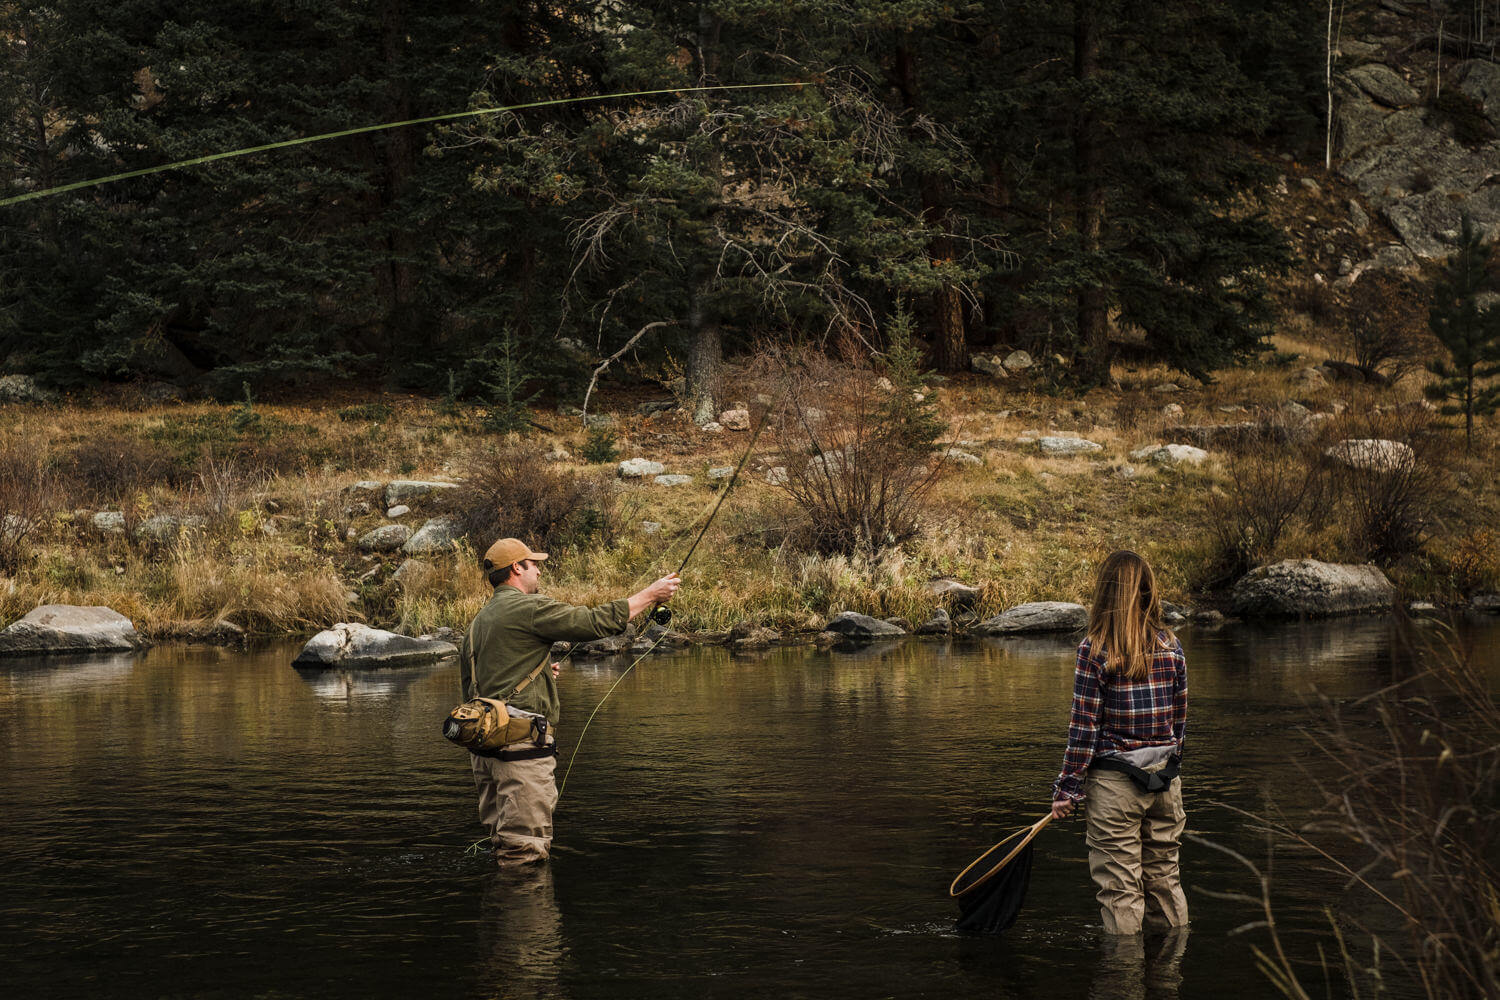 Man and woman in plaid shirts fly fish.